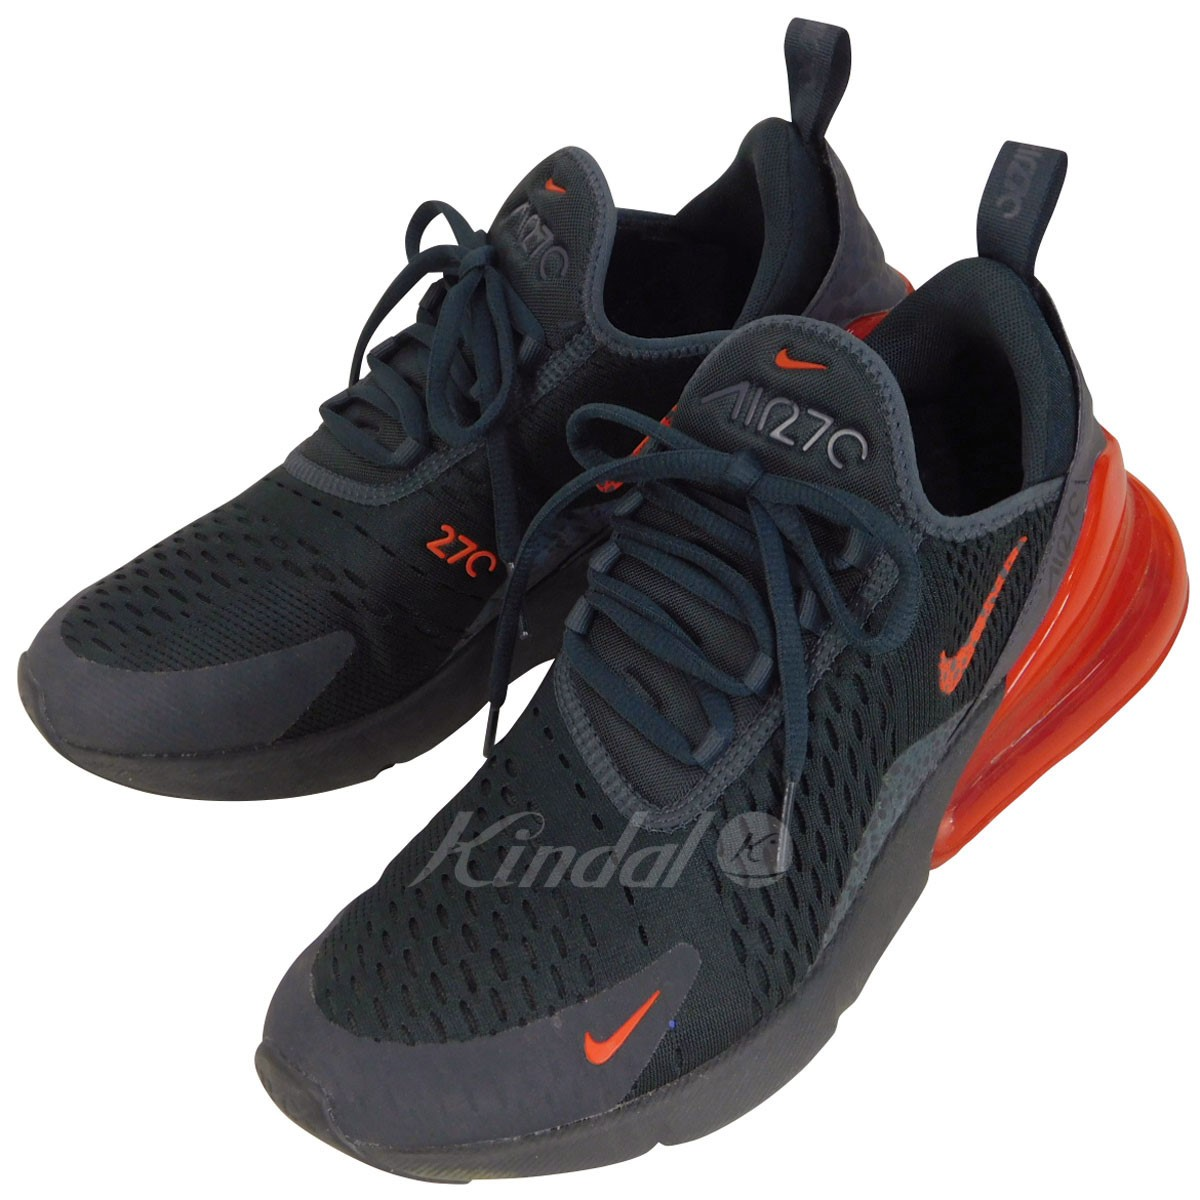 Nike Air Max 270 Reflective Black | BQ6525 001 | The Sole